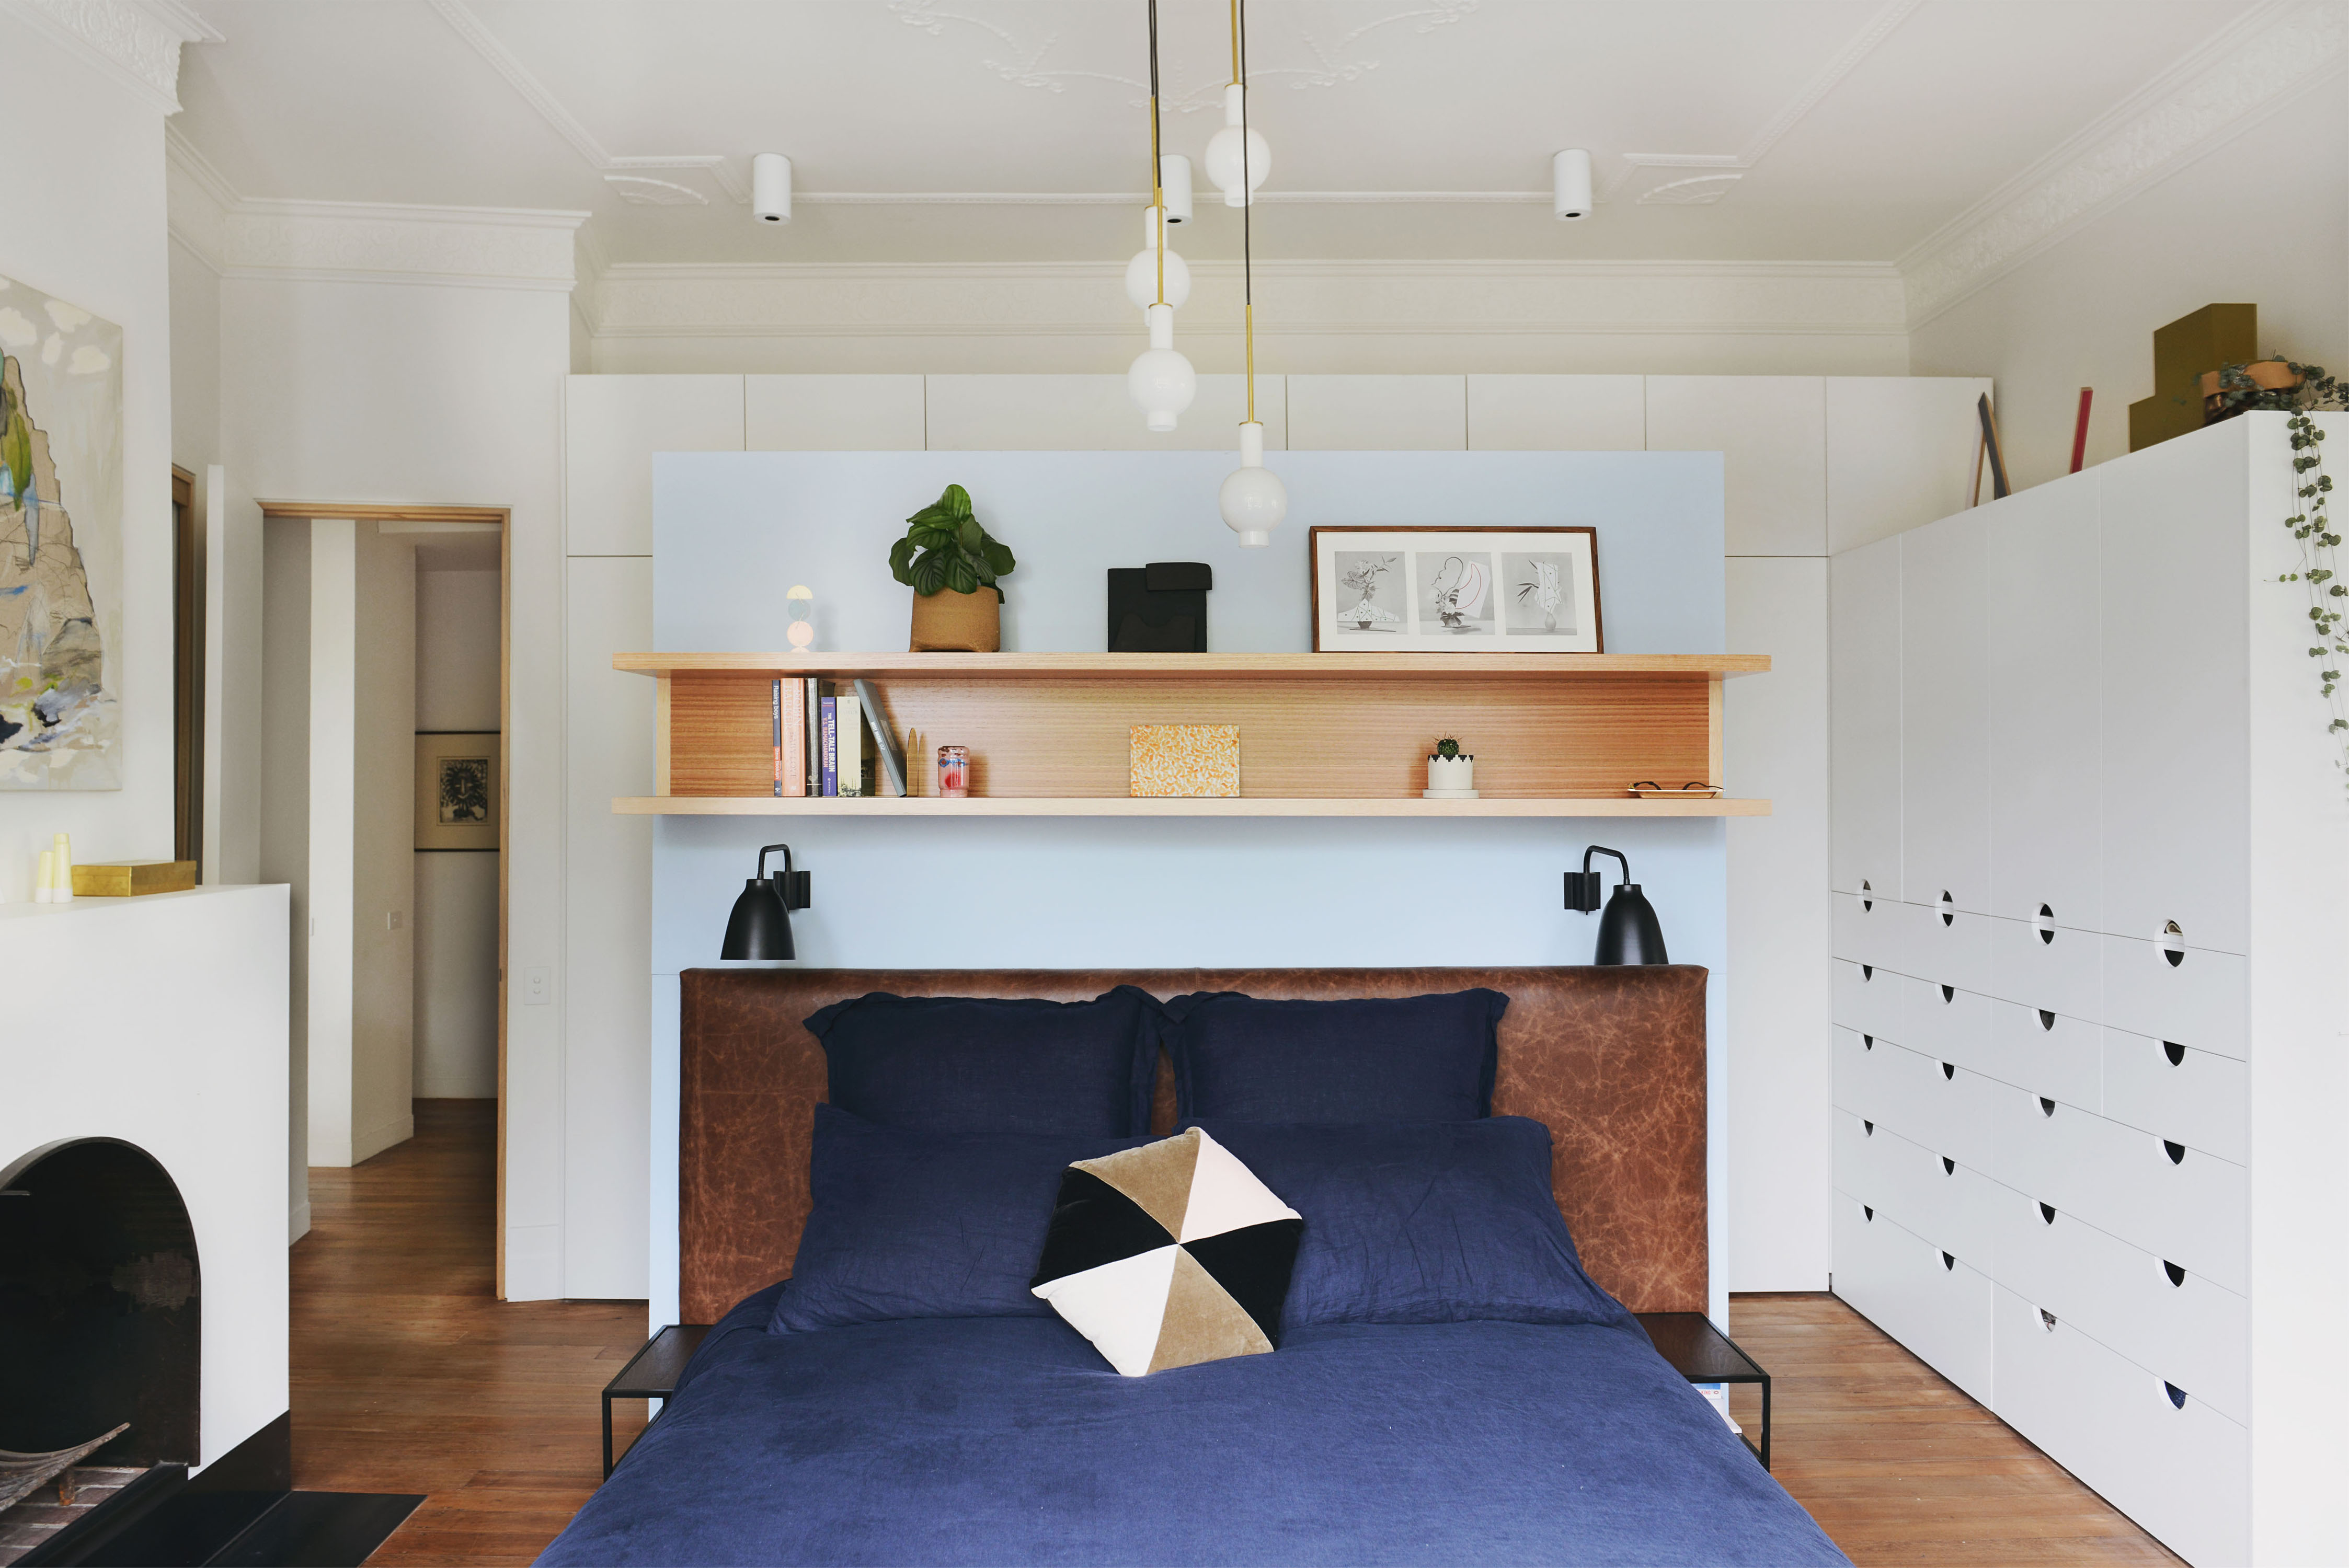 Gallery Of Park Life By Nest Architects Local Design And Interiors Fitzroy North, Vic Image 3